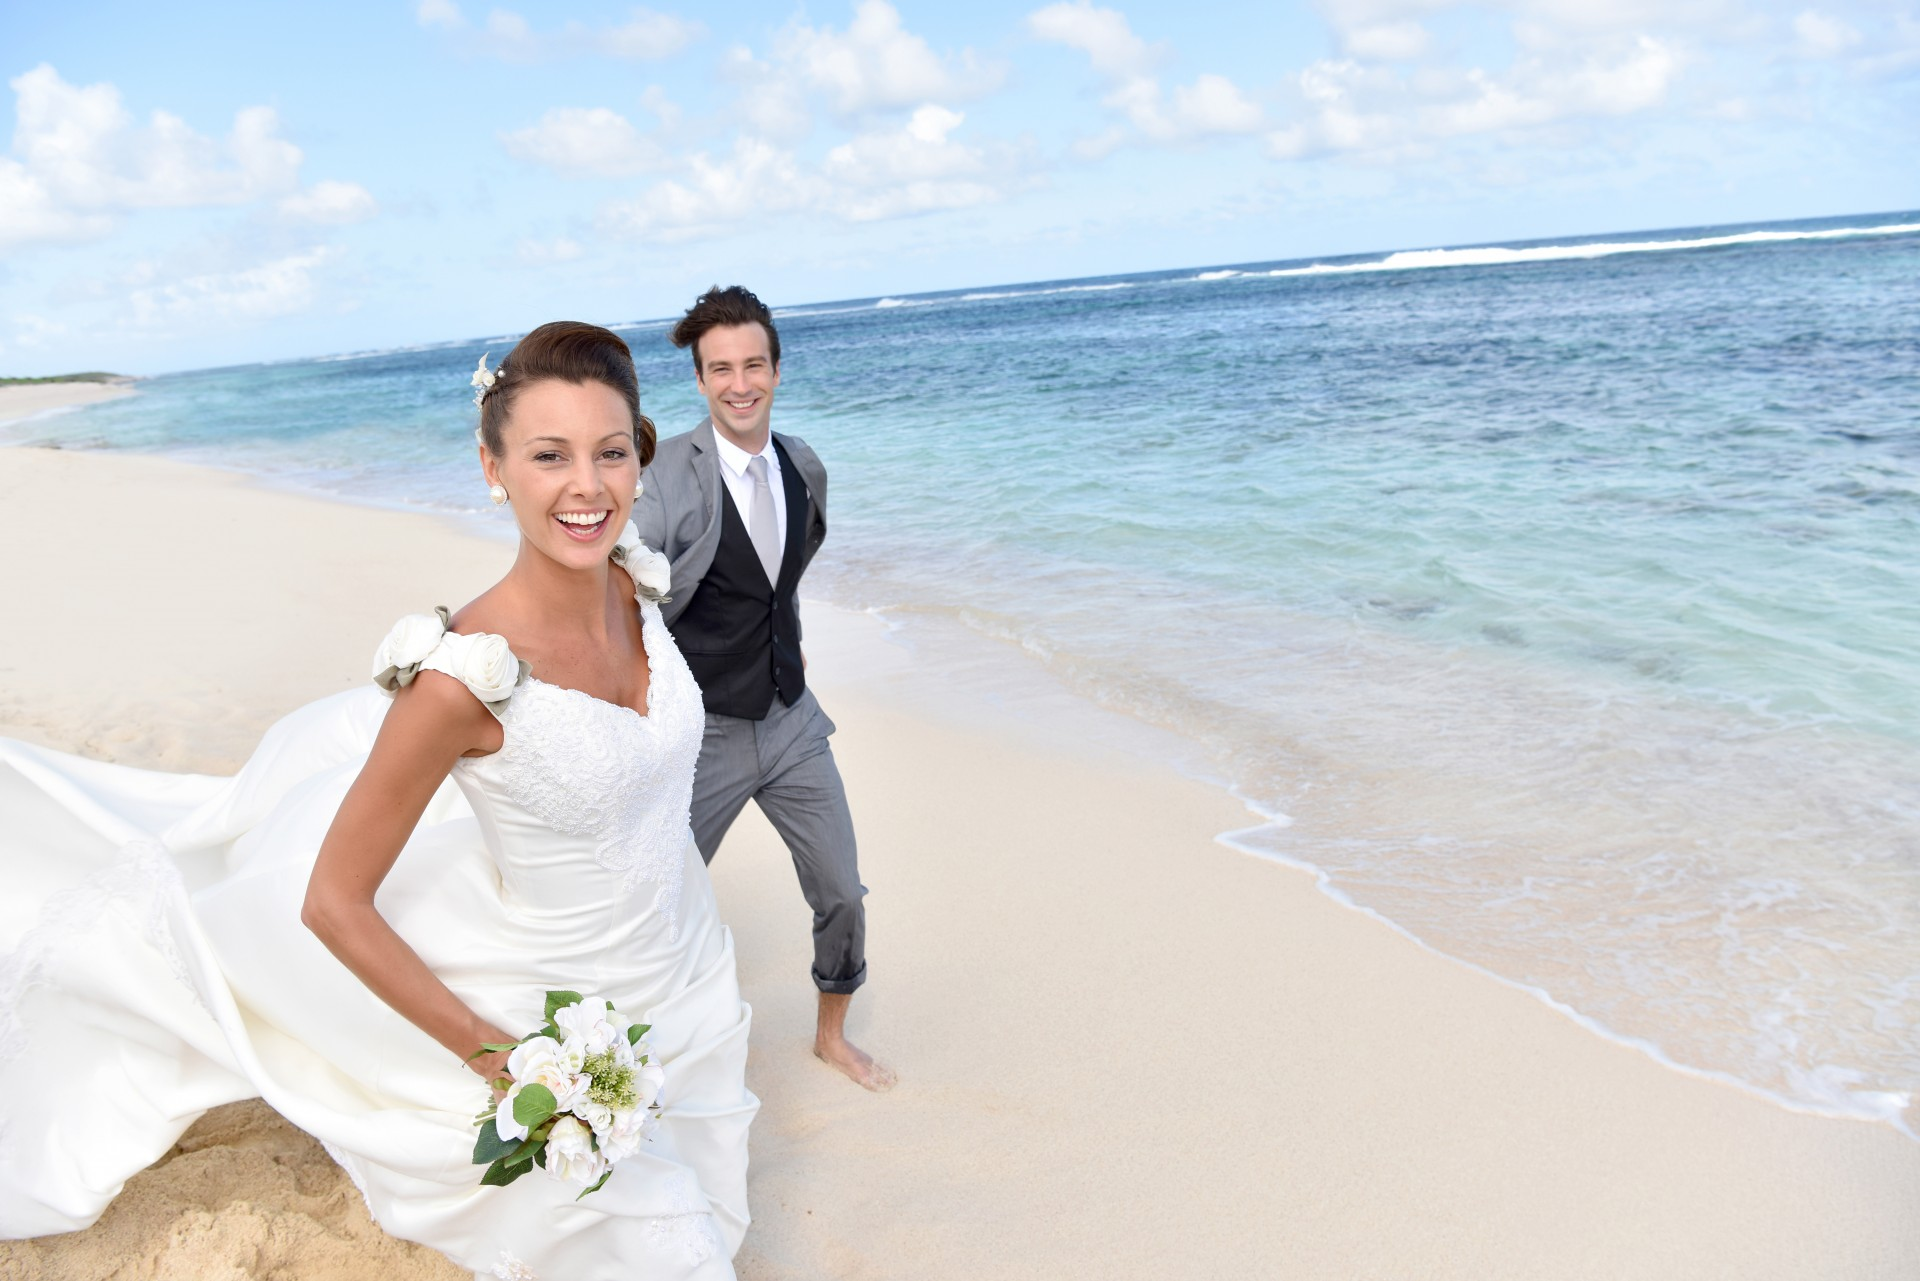 New! Intimate weddings live streamed to family and friends back home